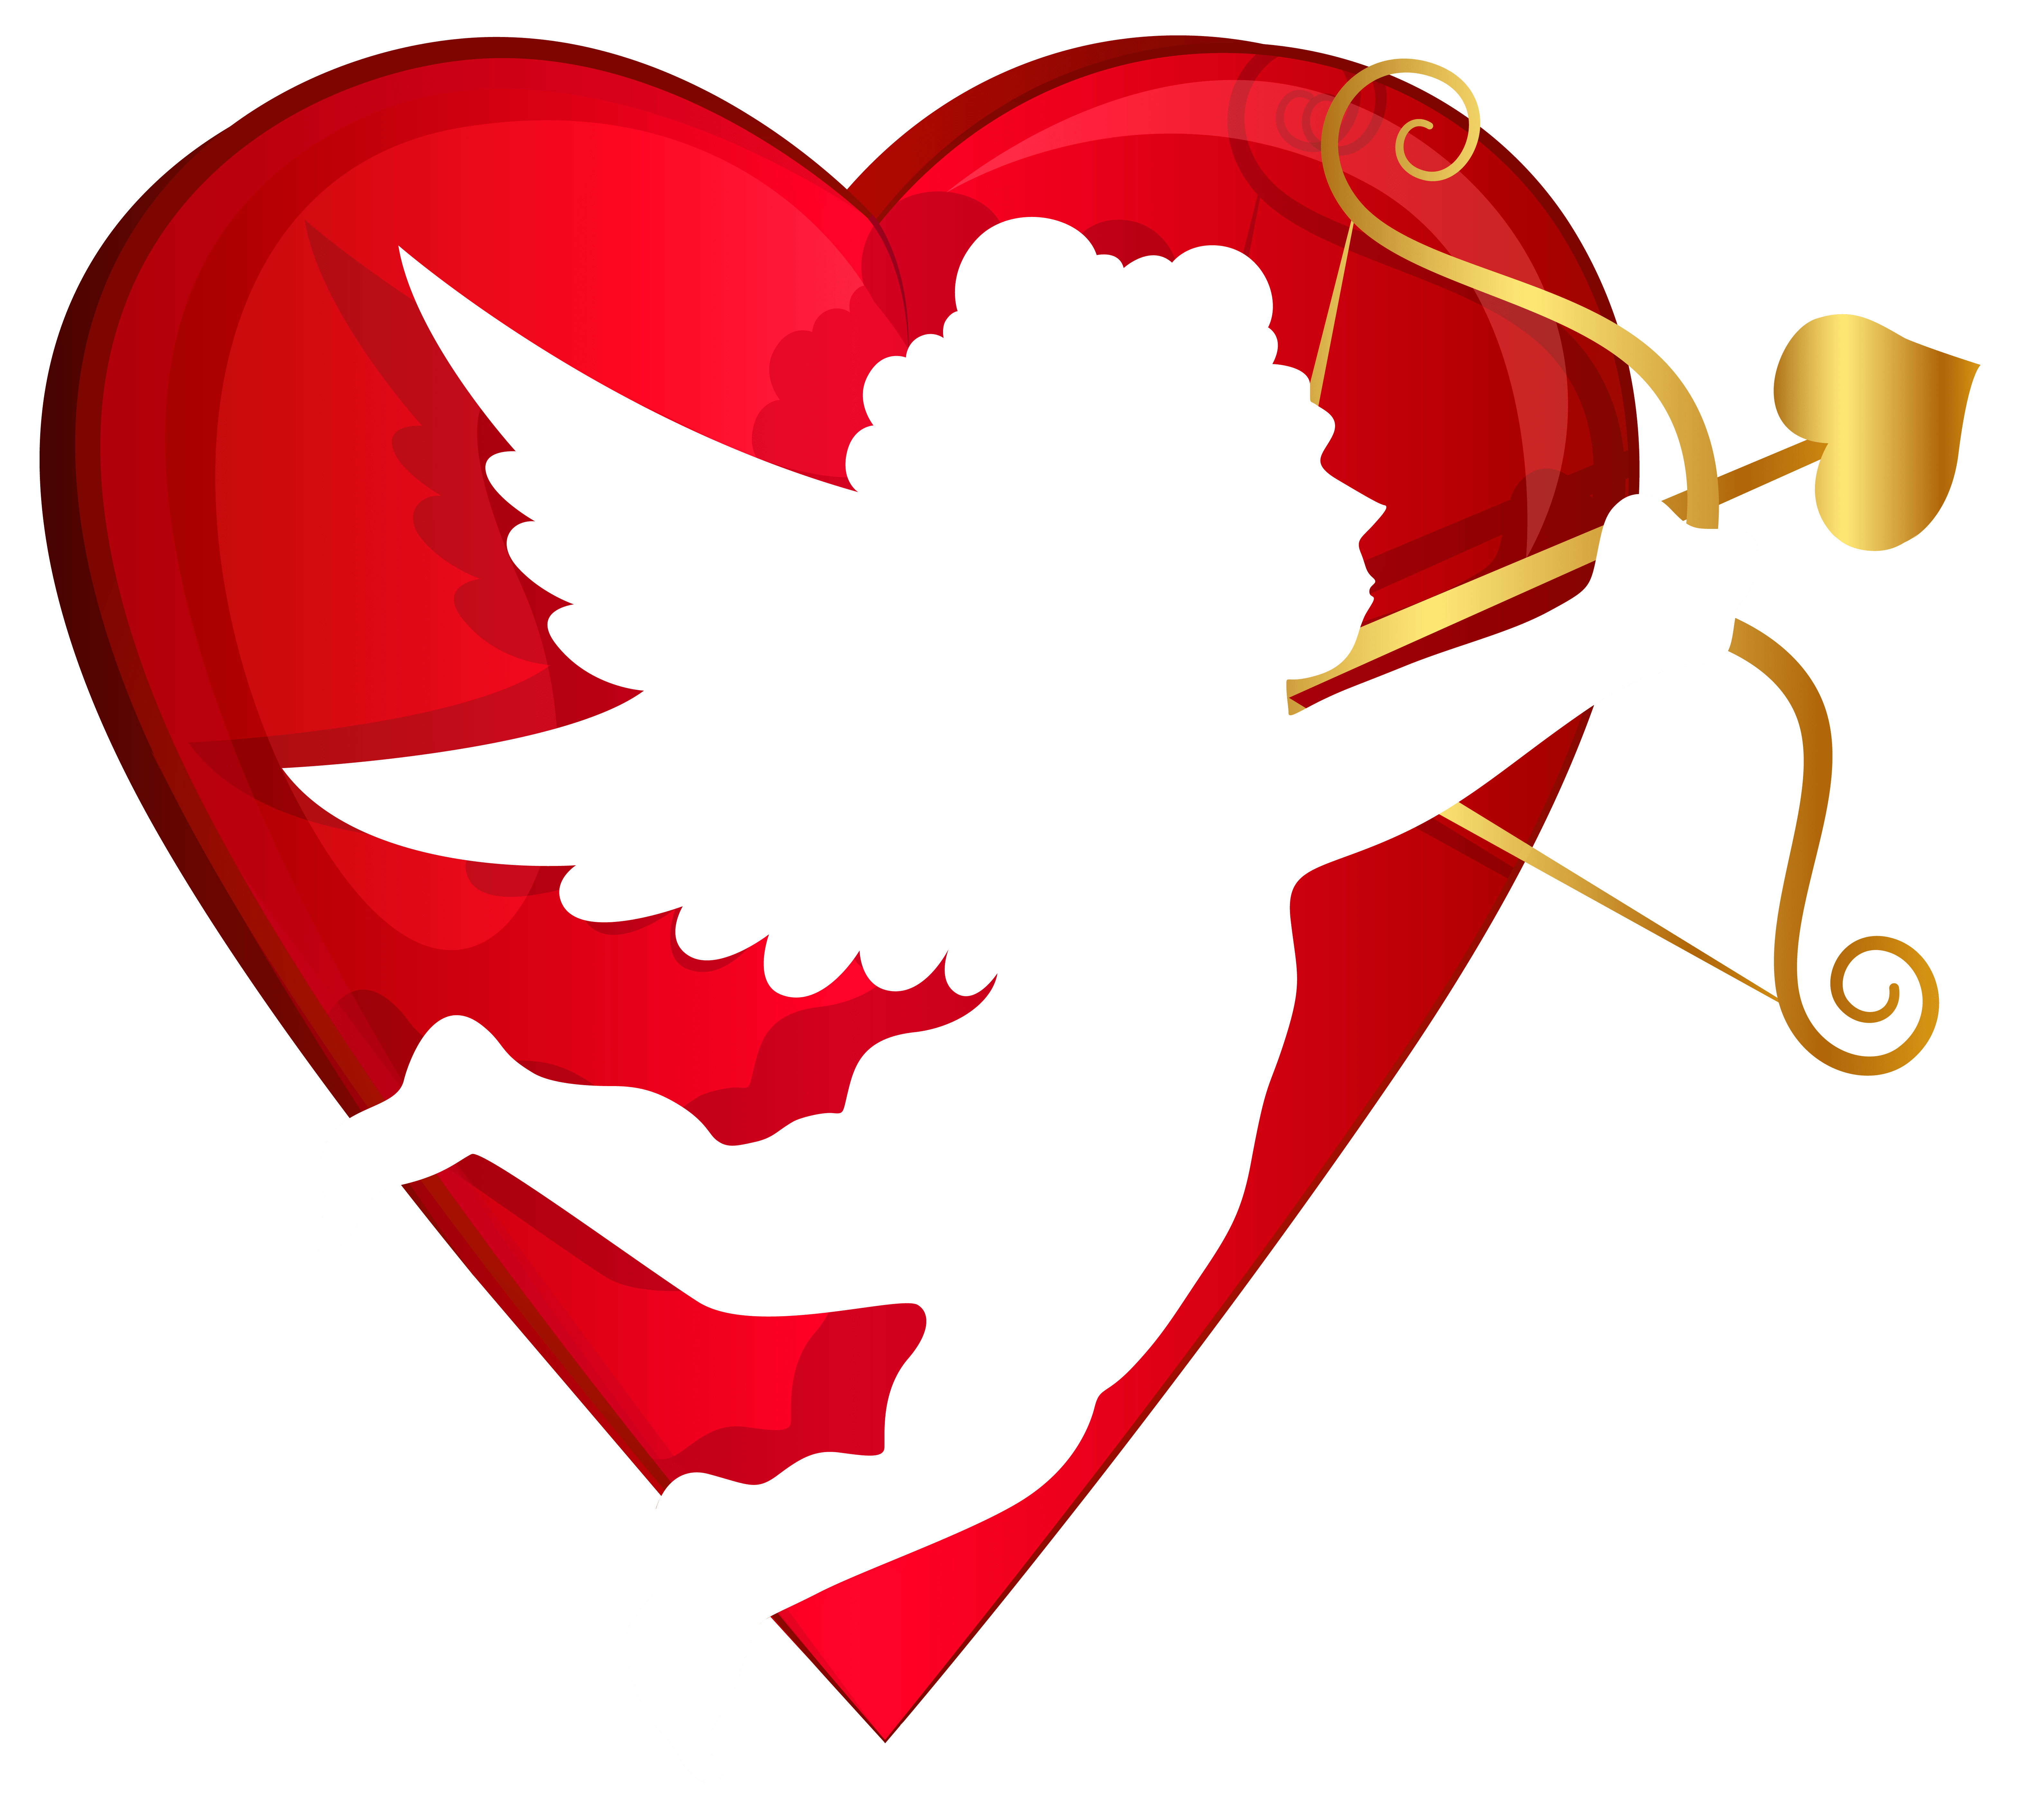 medium resolution of red heart and cupid transparent png clip art image